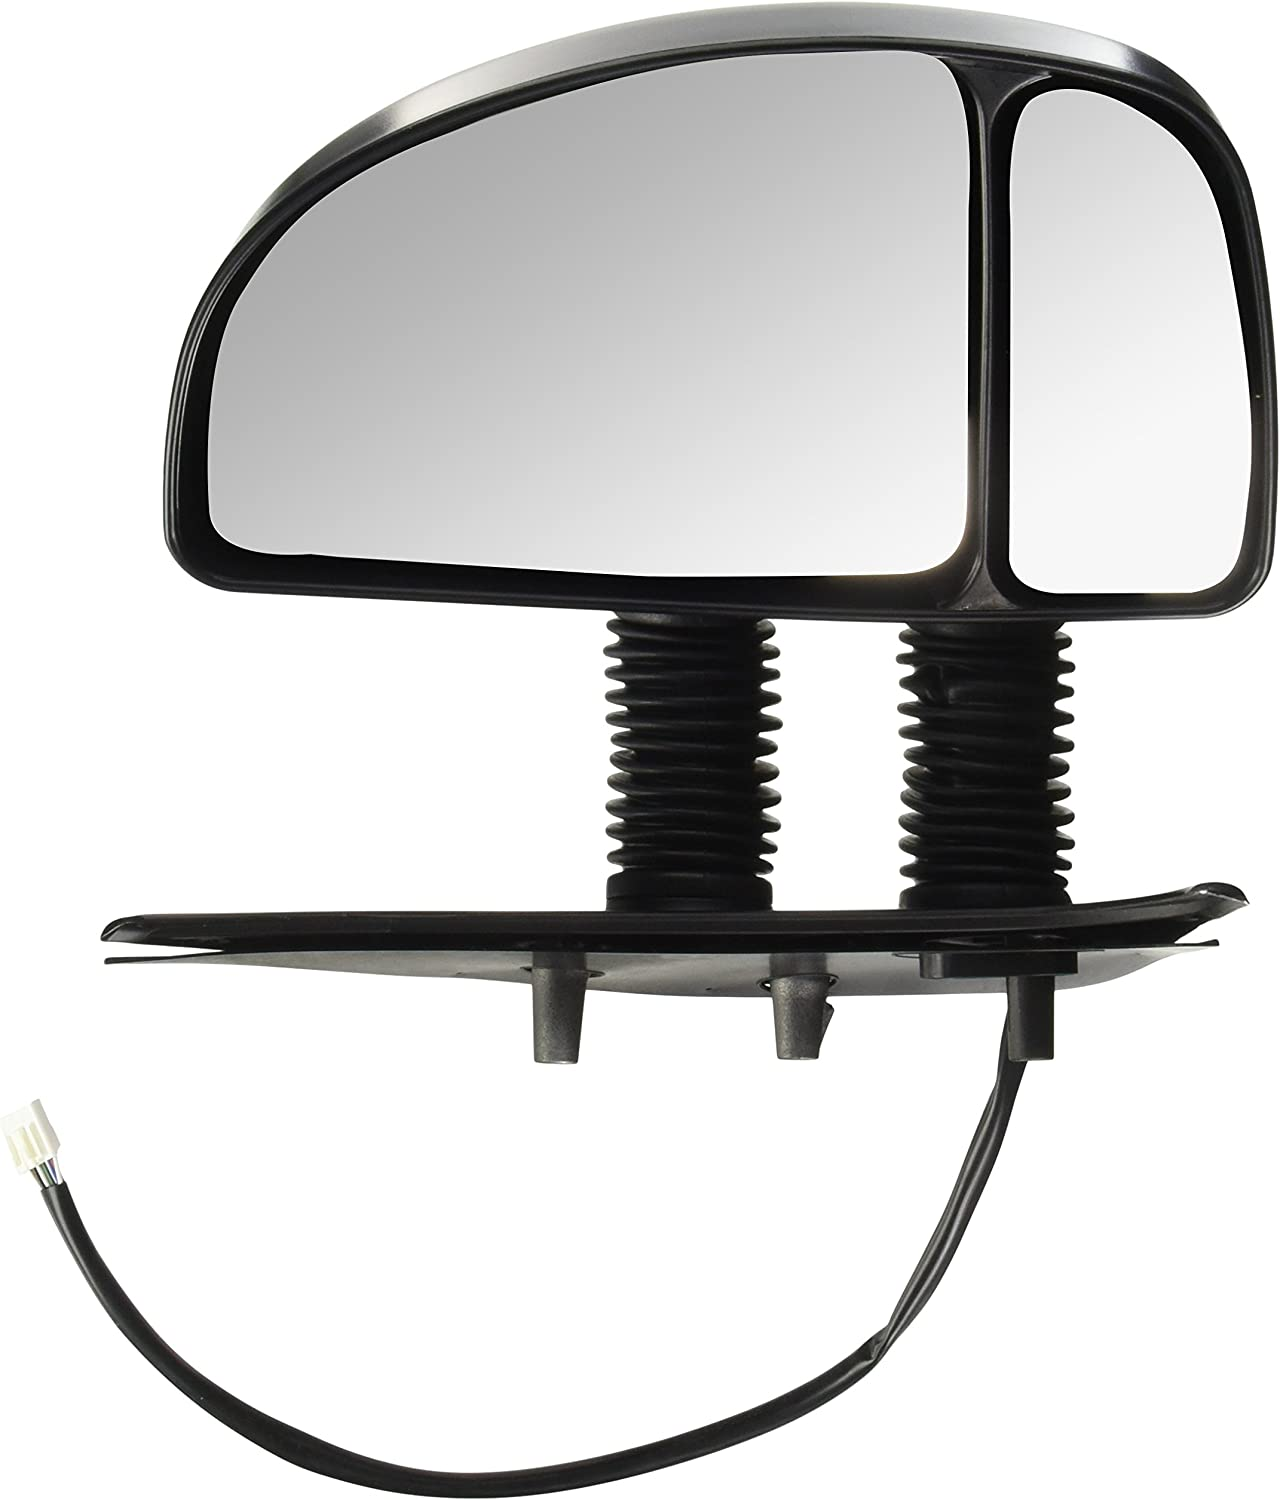 Melchioni 335030514/Electric Rearview for Car